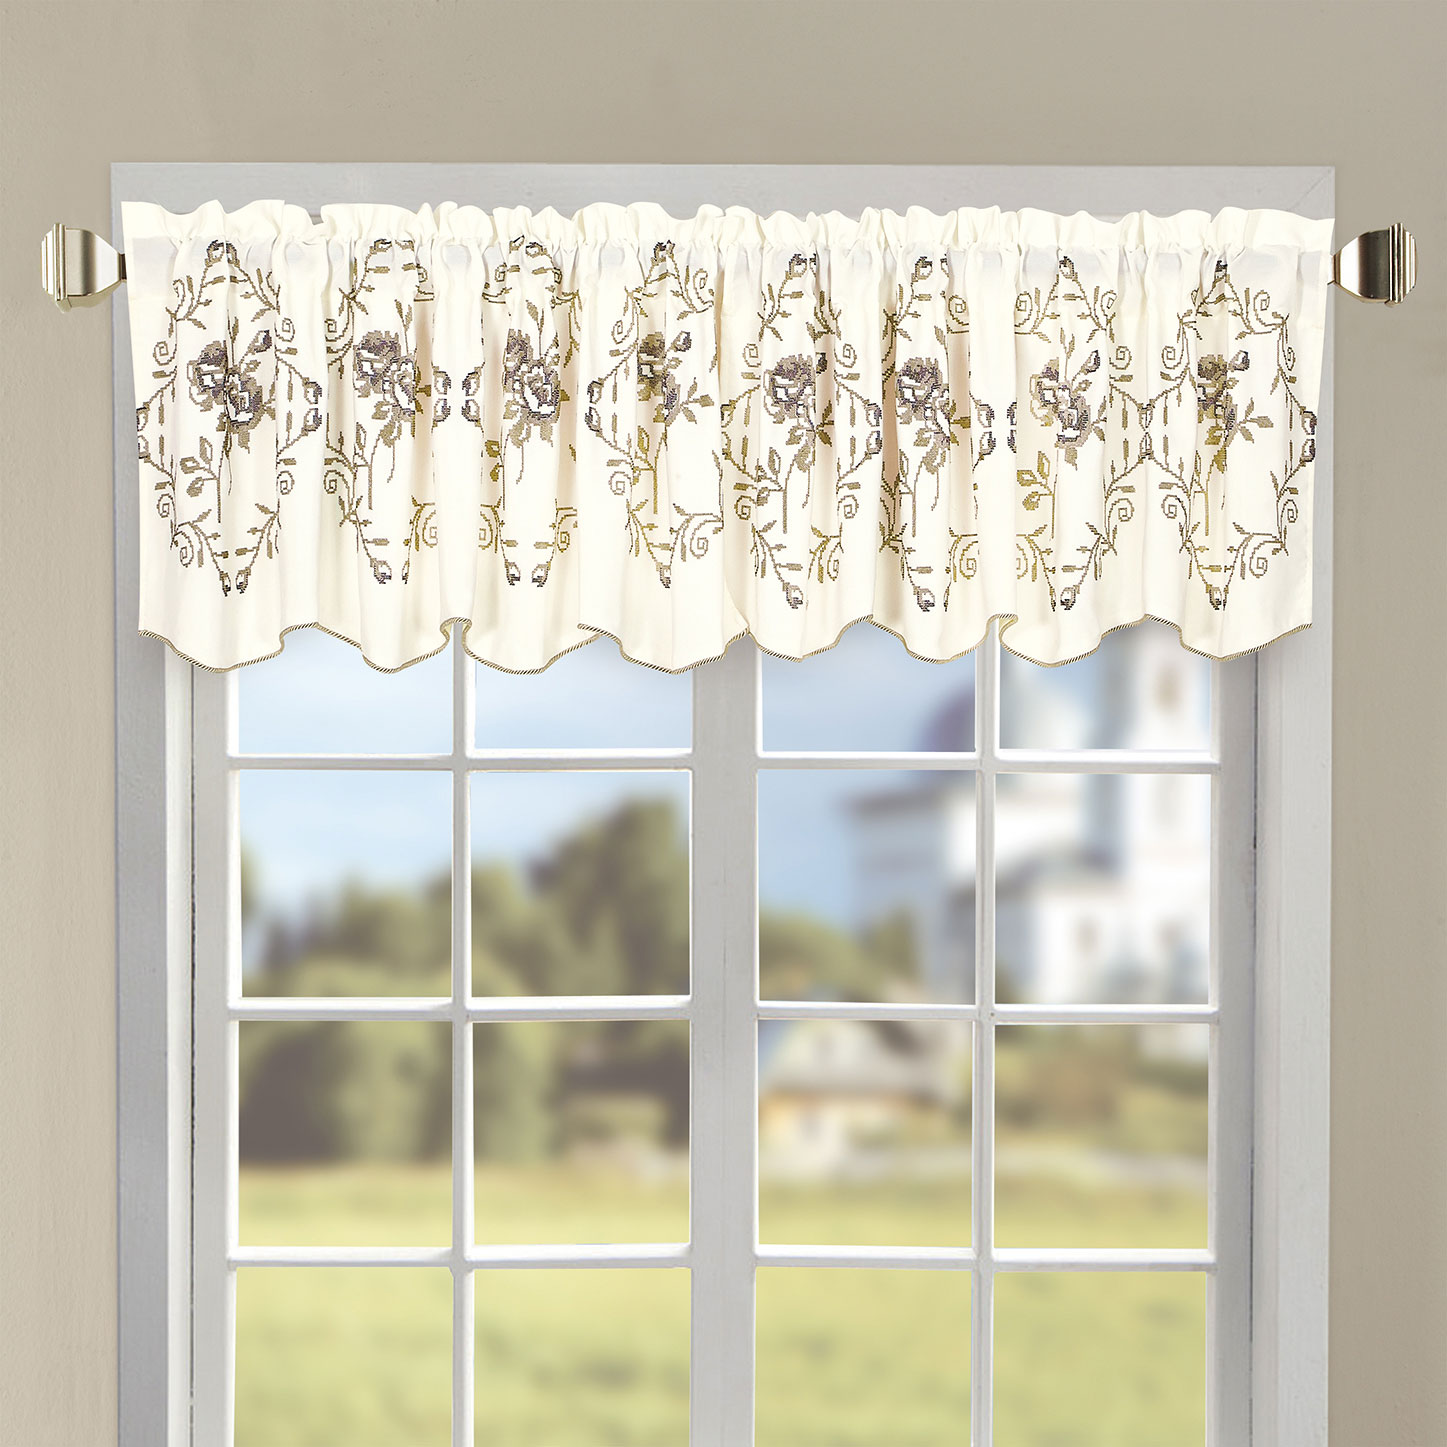 Roses Embroidery Window Curtain Valance Bnf Home Inc